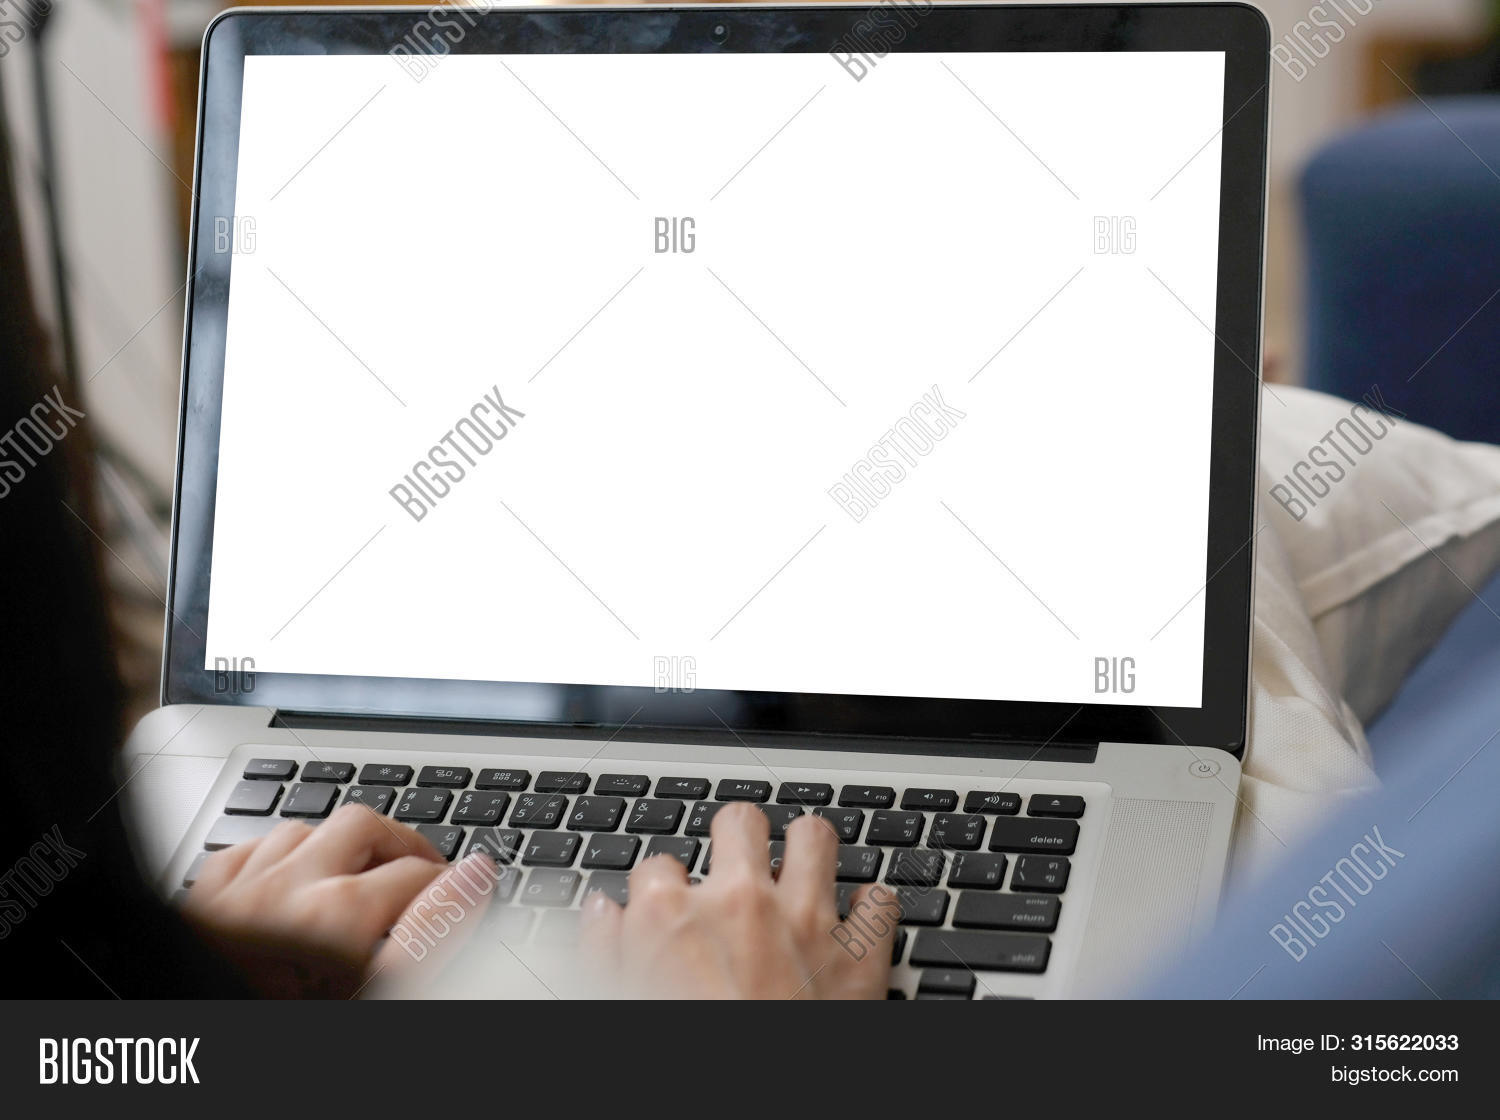 advertisement,background,blank,business,cafe,communication,computer,connect,device,digital,display,education,hands,home,internet,laptop,media,mock,monitor,network,office,online,people,screen,searching,technology,template,typing,up,video,web,website,woman,working